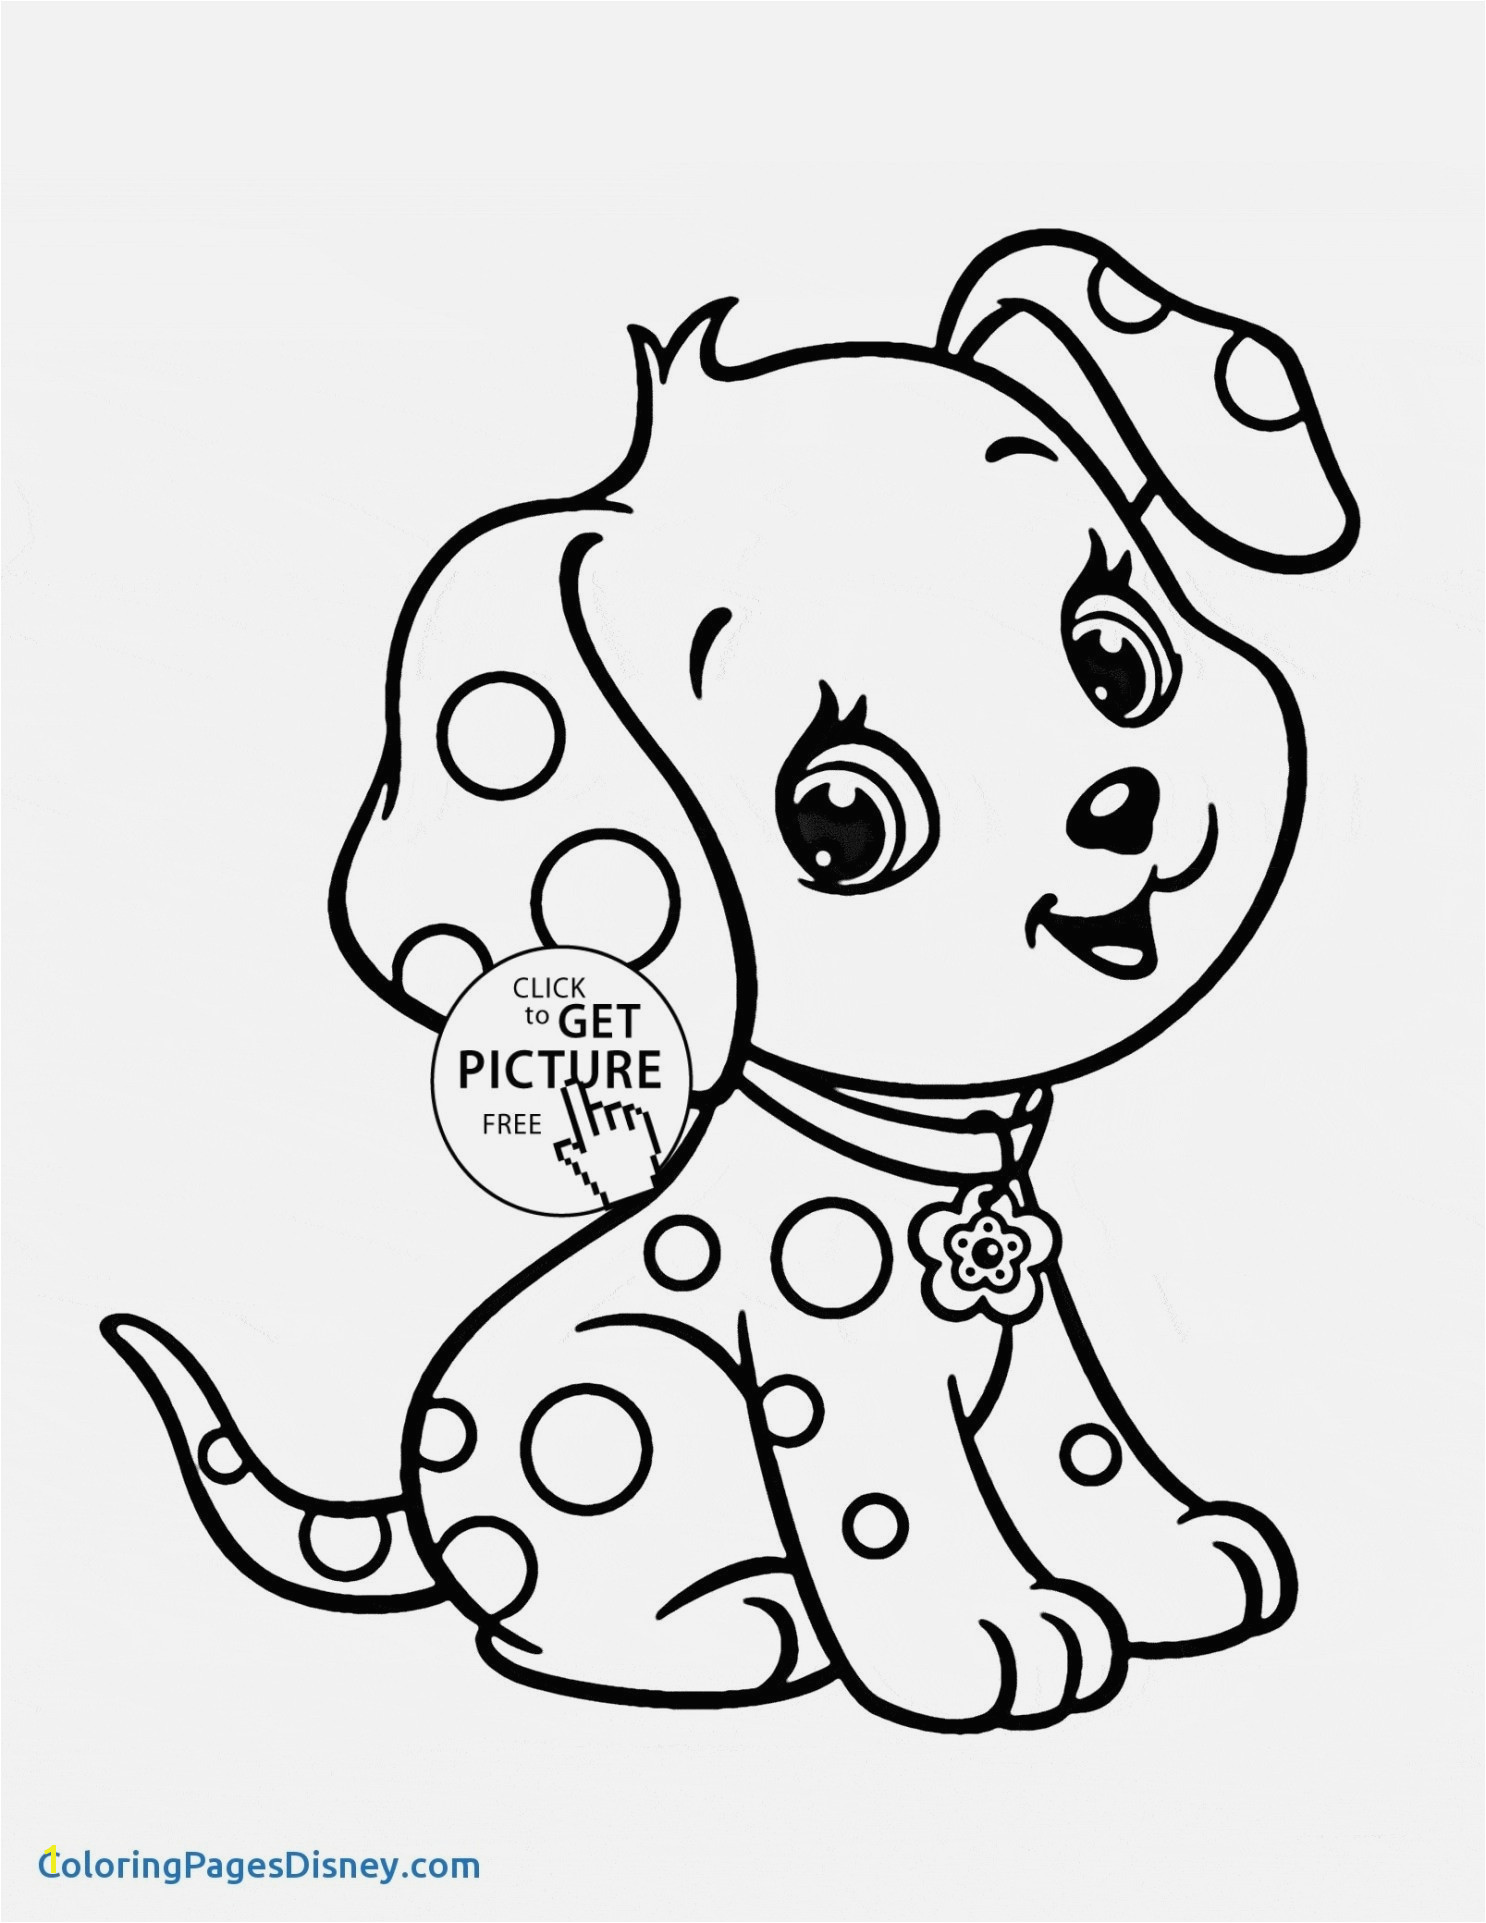 Free Fall Coloring Pages Best Ever Printable Kids Books Elegant Fall Coloring Free 30aa Pages 0d Page